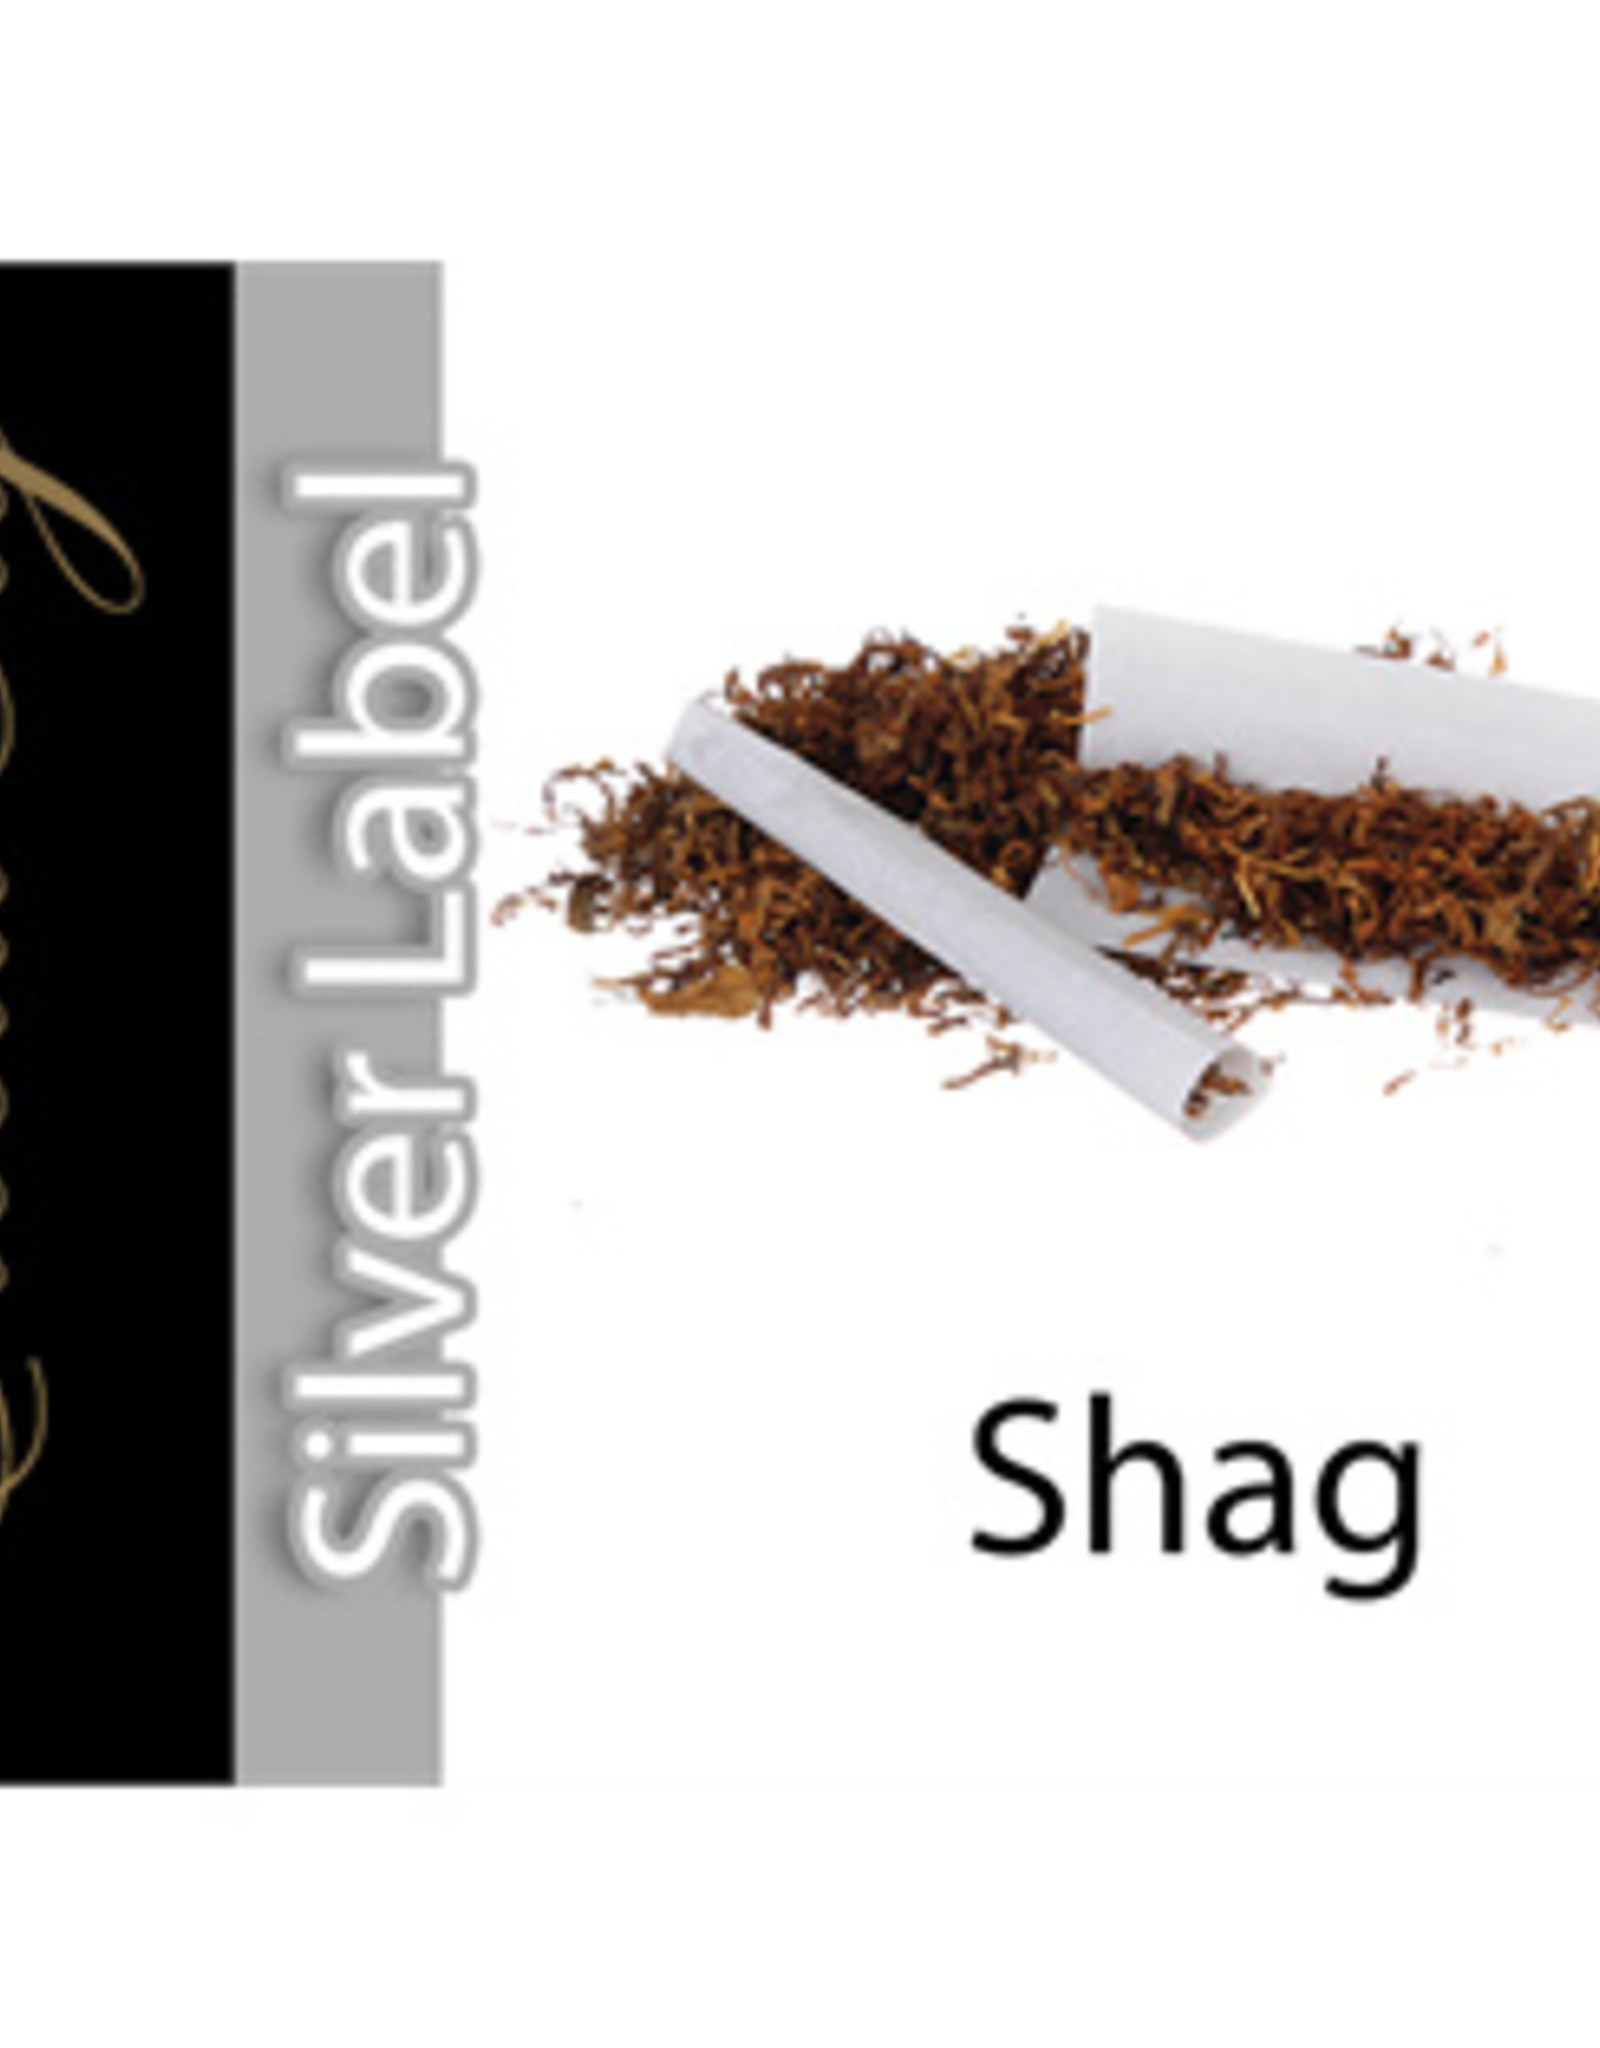 Exclucig Exclucig Silver Label E-liquid Shag 18 mg Nicotine